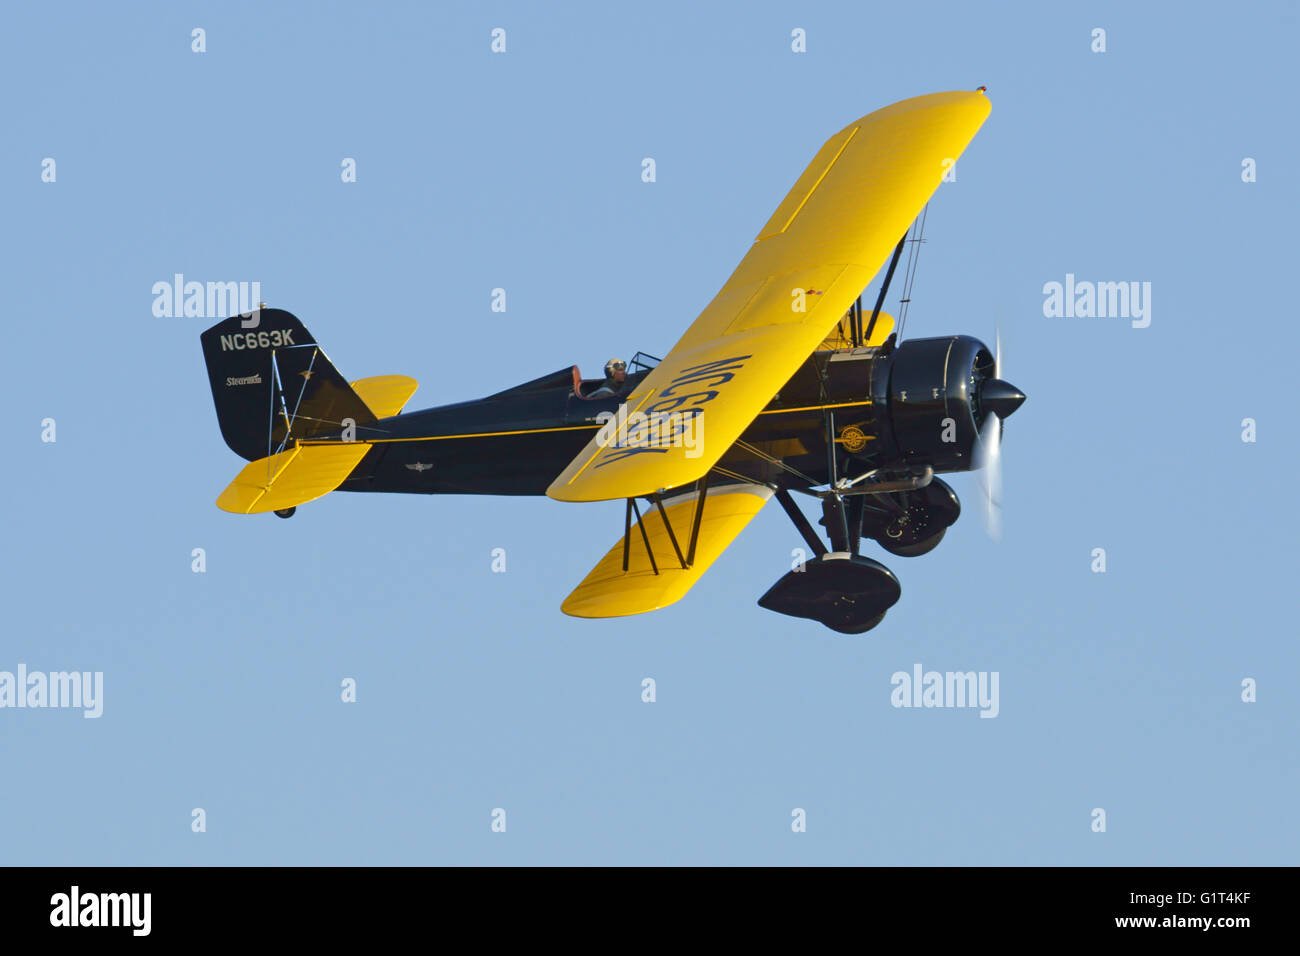 Airplane vintage WWII bi-plane propeller aircraft flying at 2016 Planes of Fame Air Show in California - Stock Image